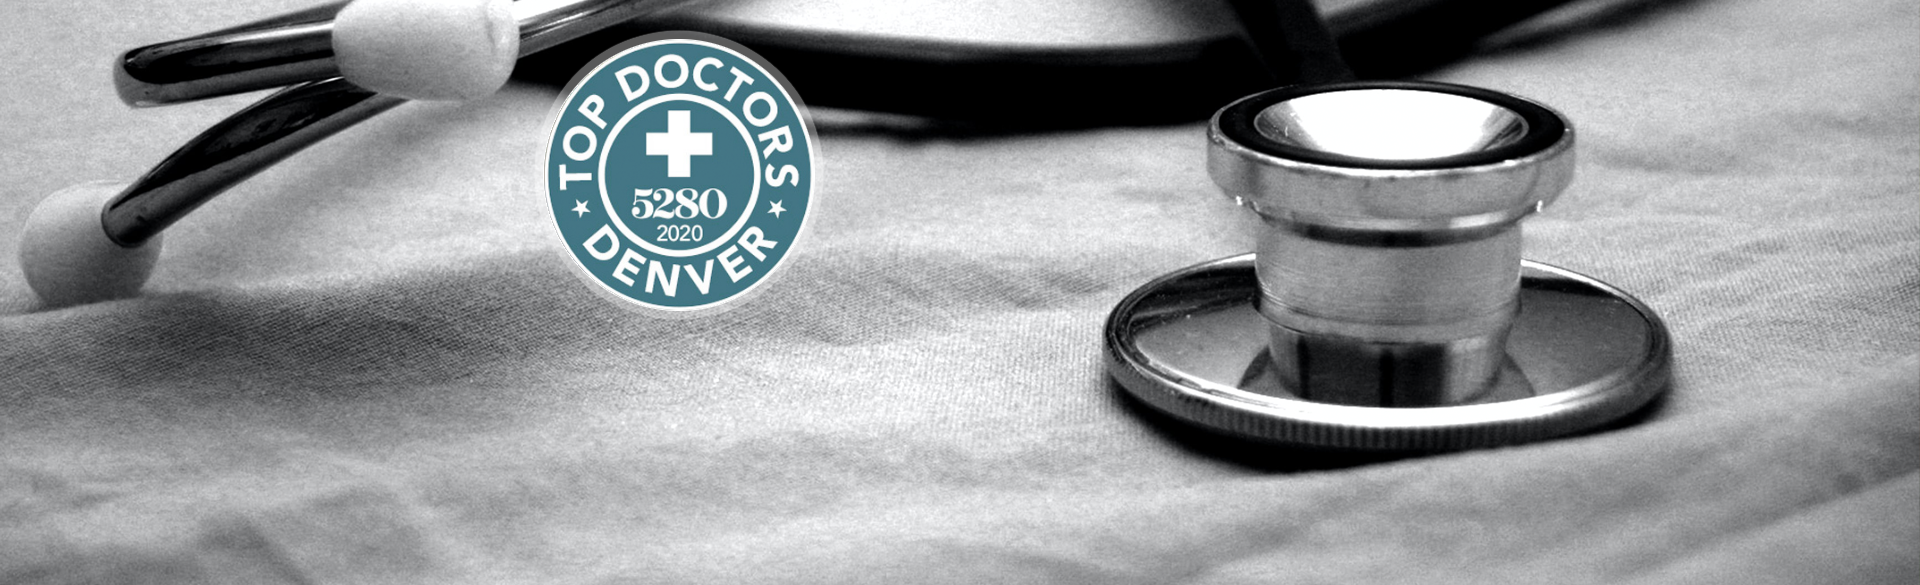 5280 Magazine Names More Than 160 CU School of Medicine Faculty Members as Top Doctors